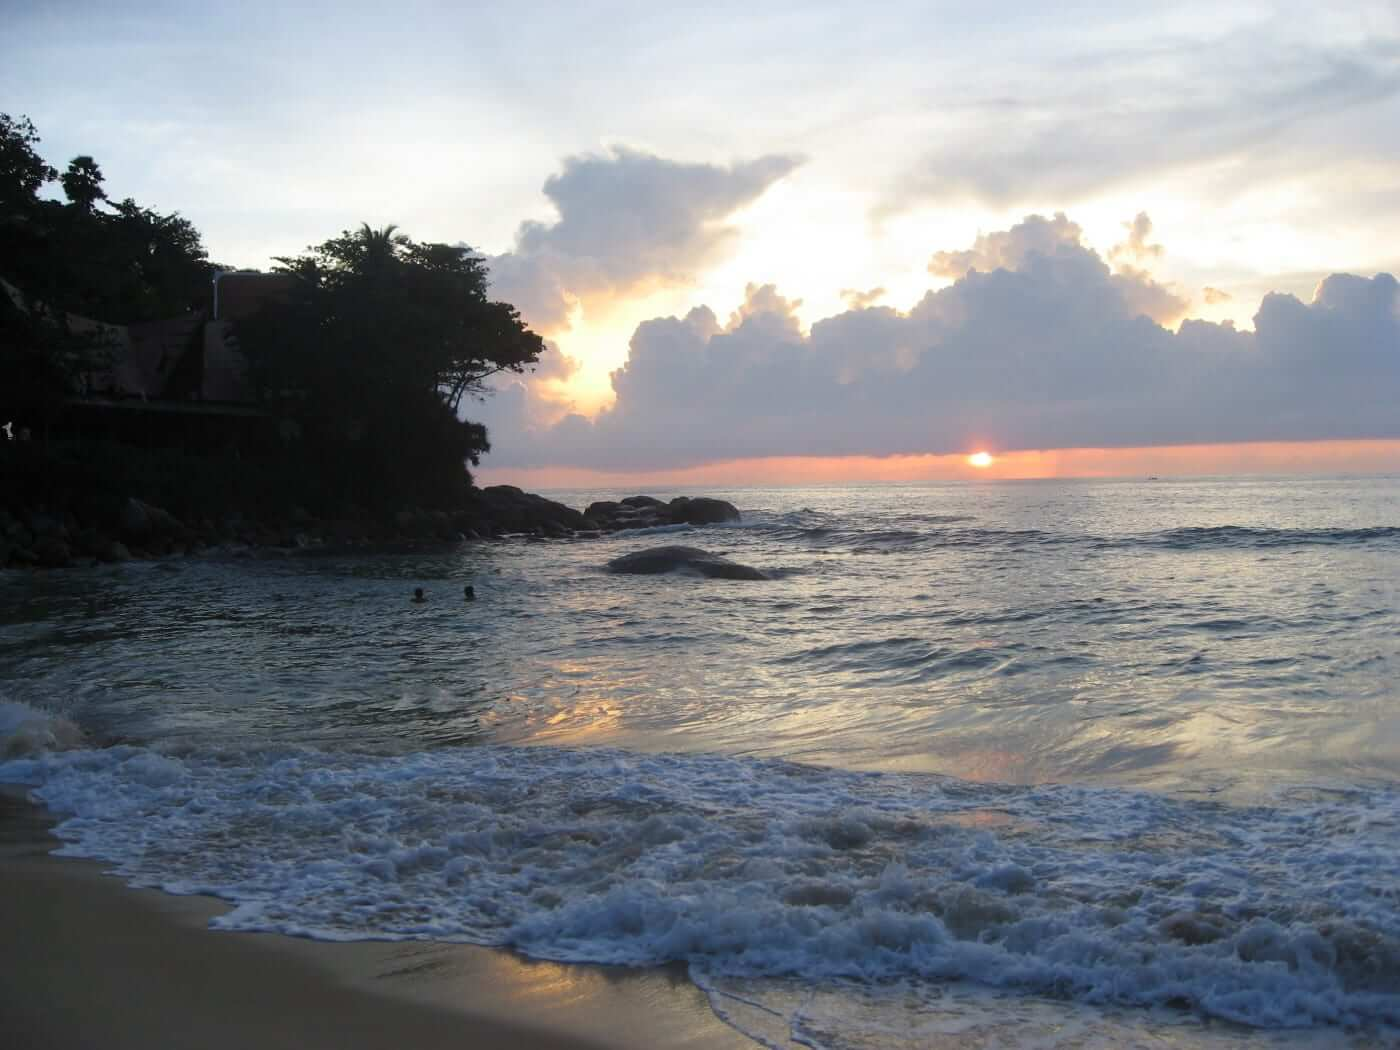 beaches in phuket during sunset